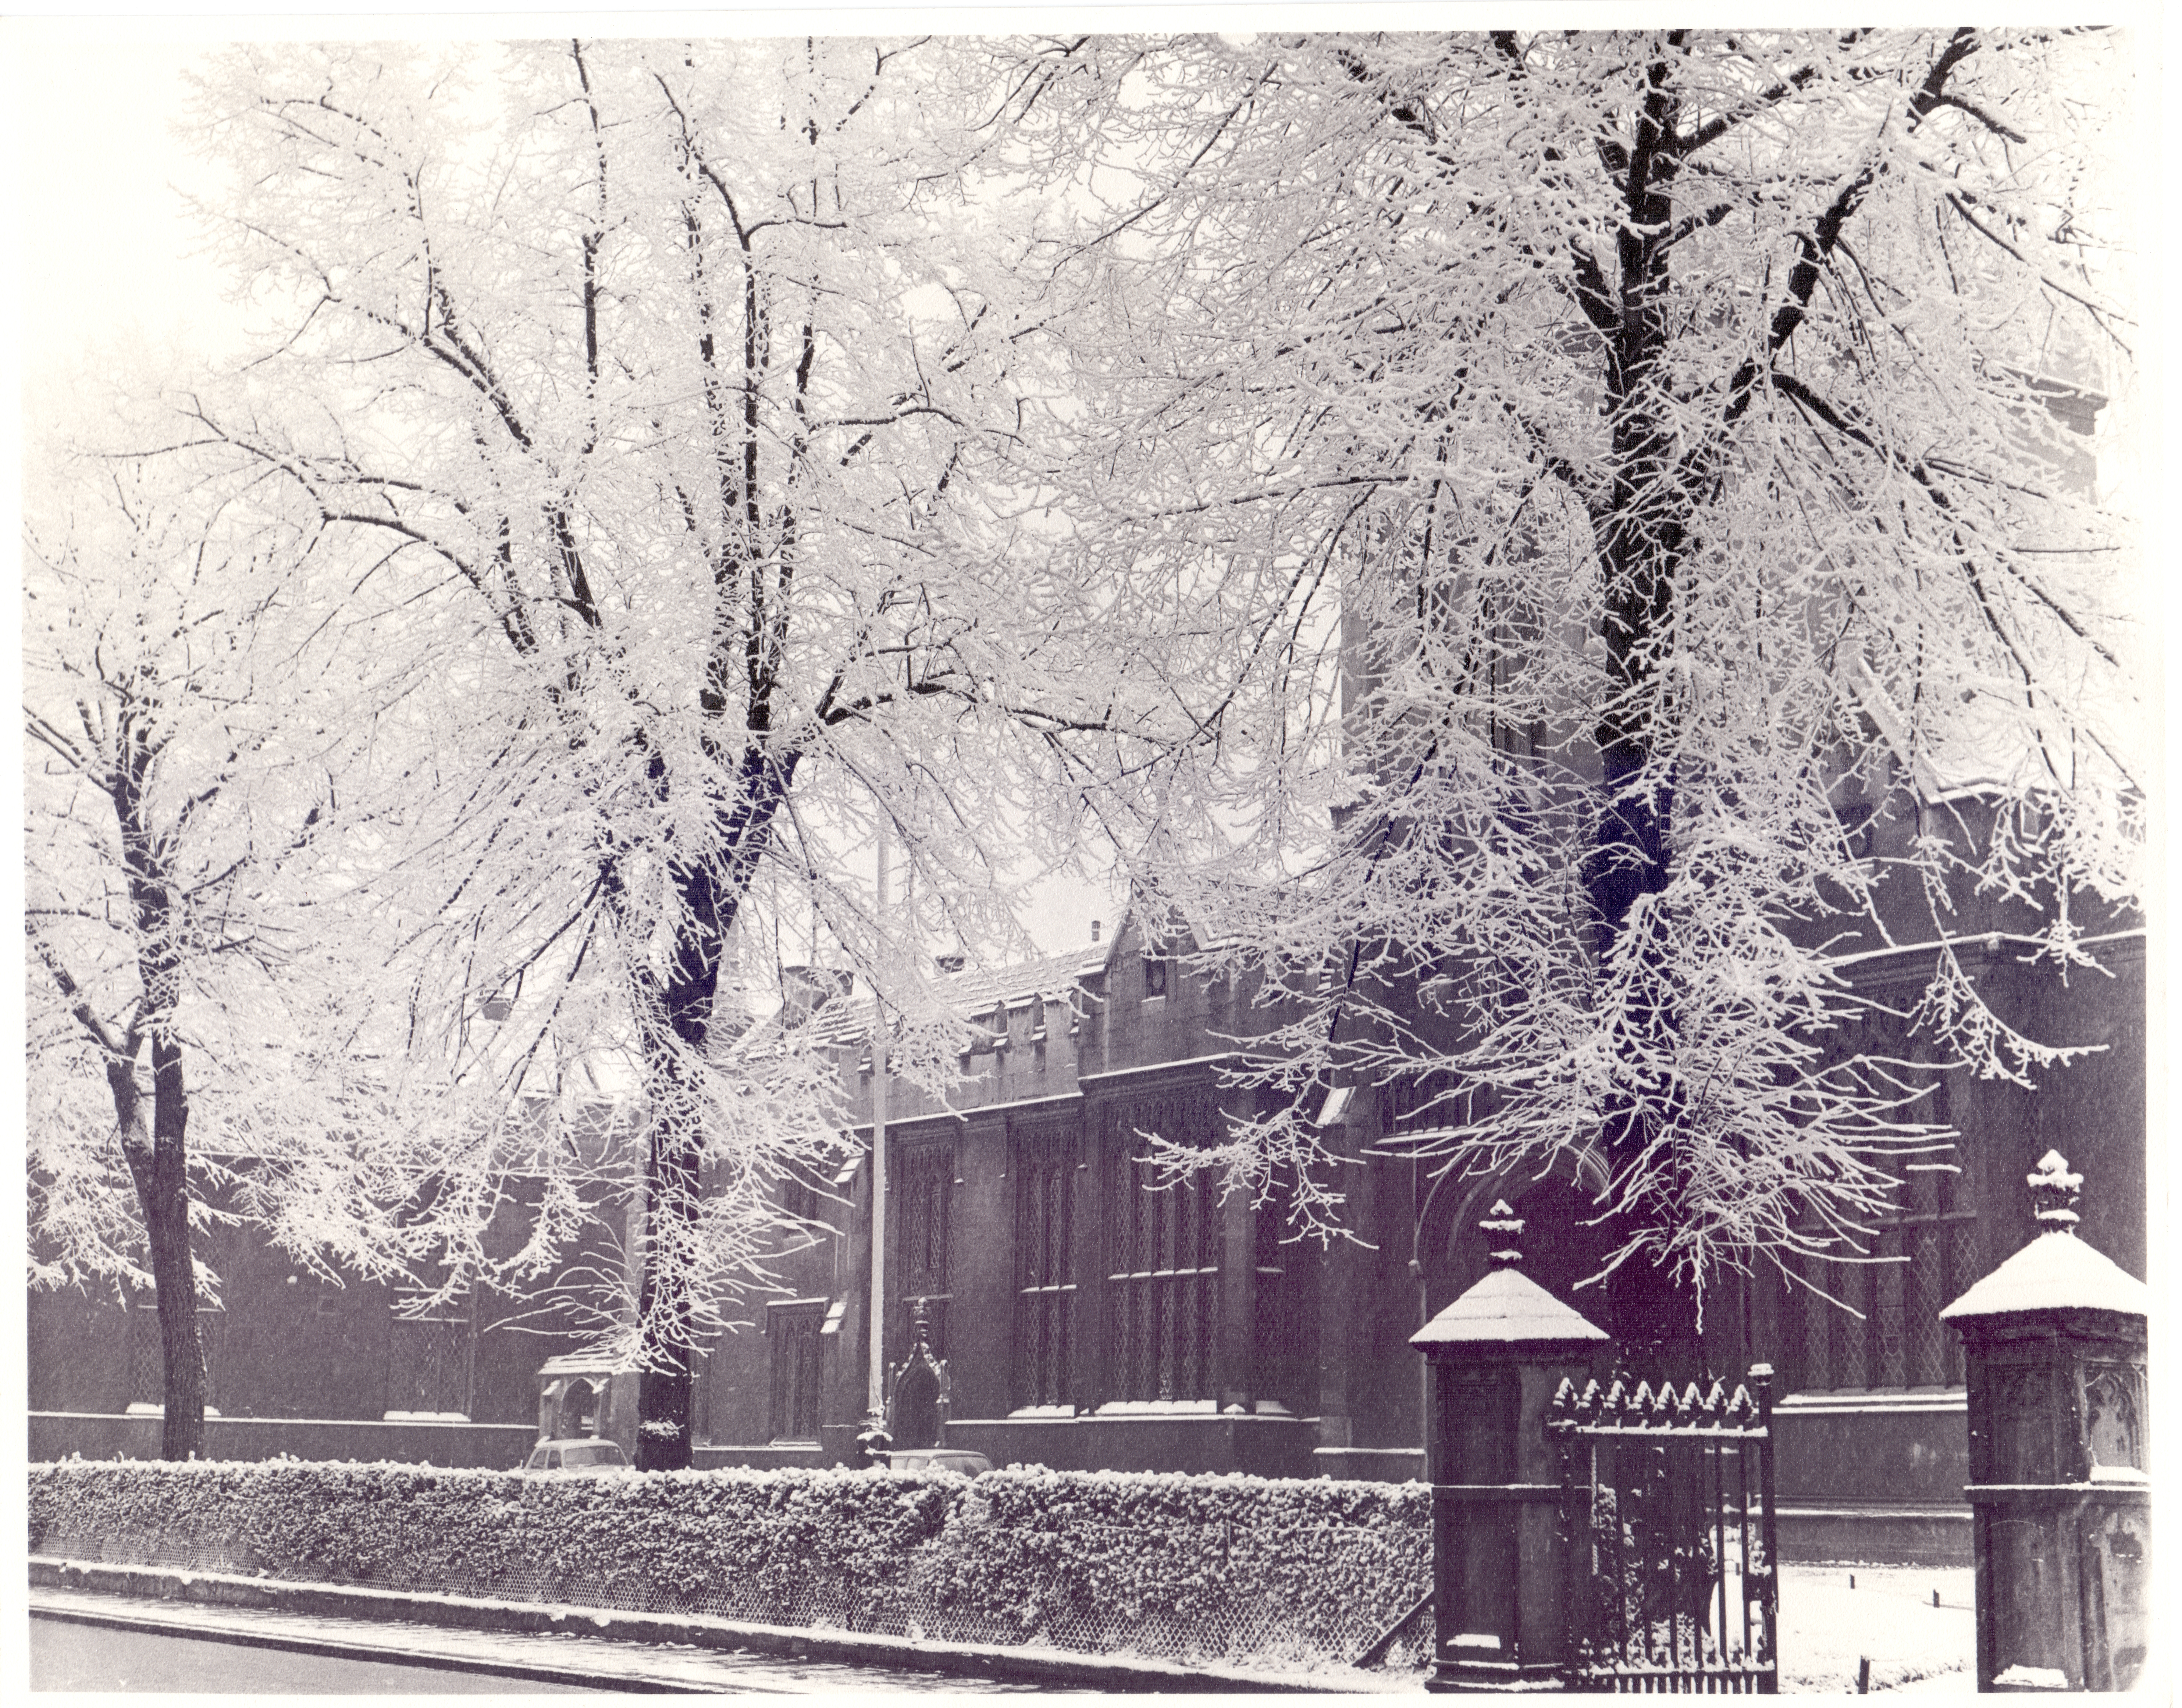 Harpur Street frontage in snow, c1960 - credit needed to The Bedford Times & Citizen